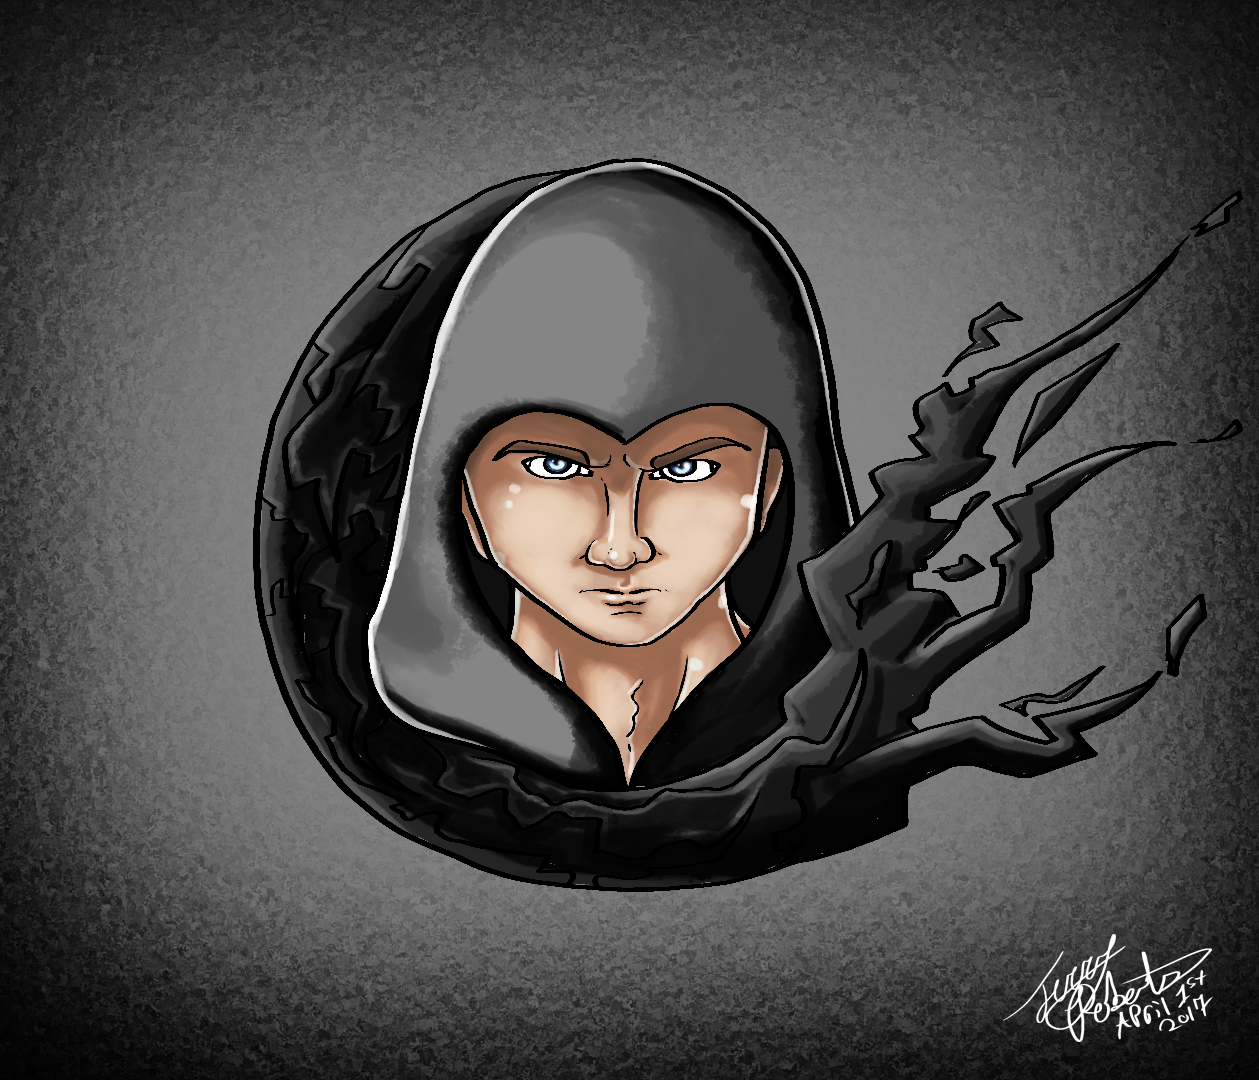 Youtube Avatar By Jerry-roberts On Newgrounds